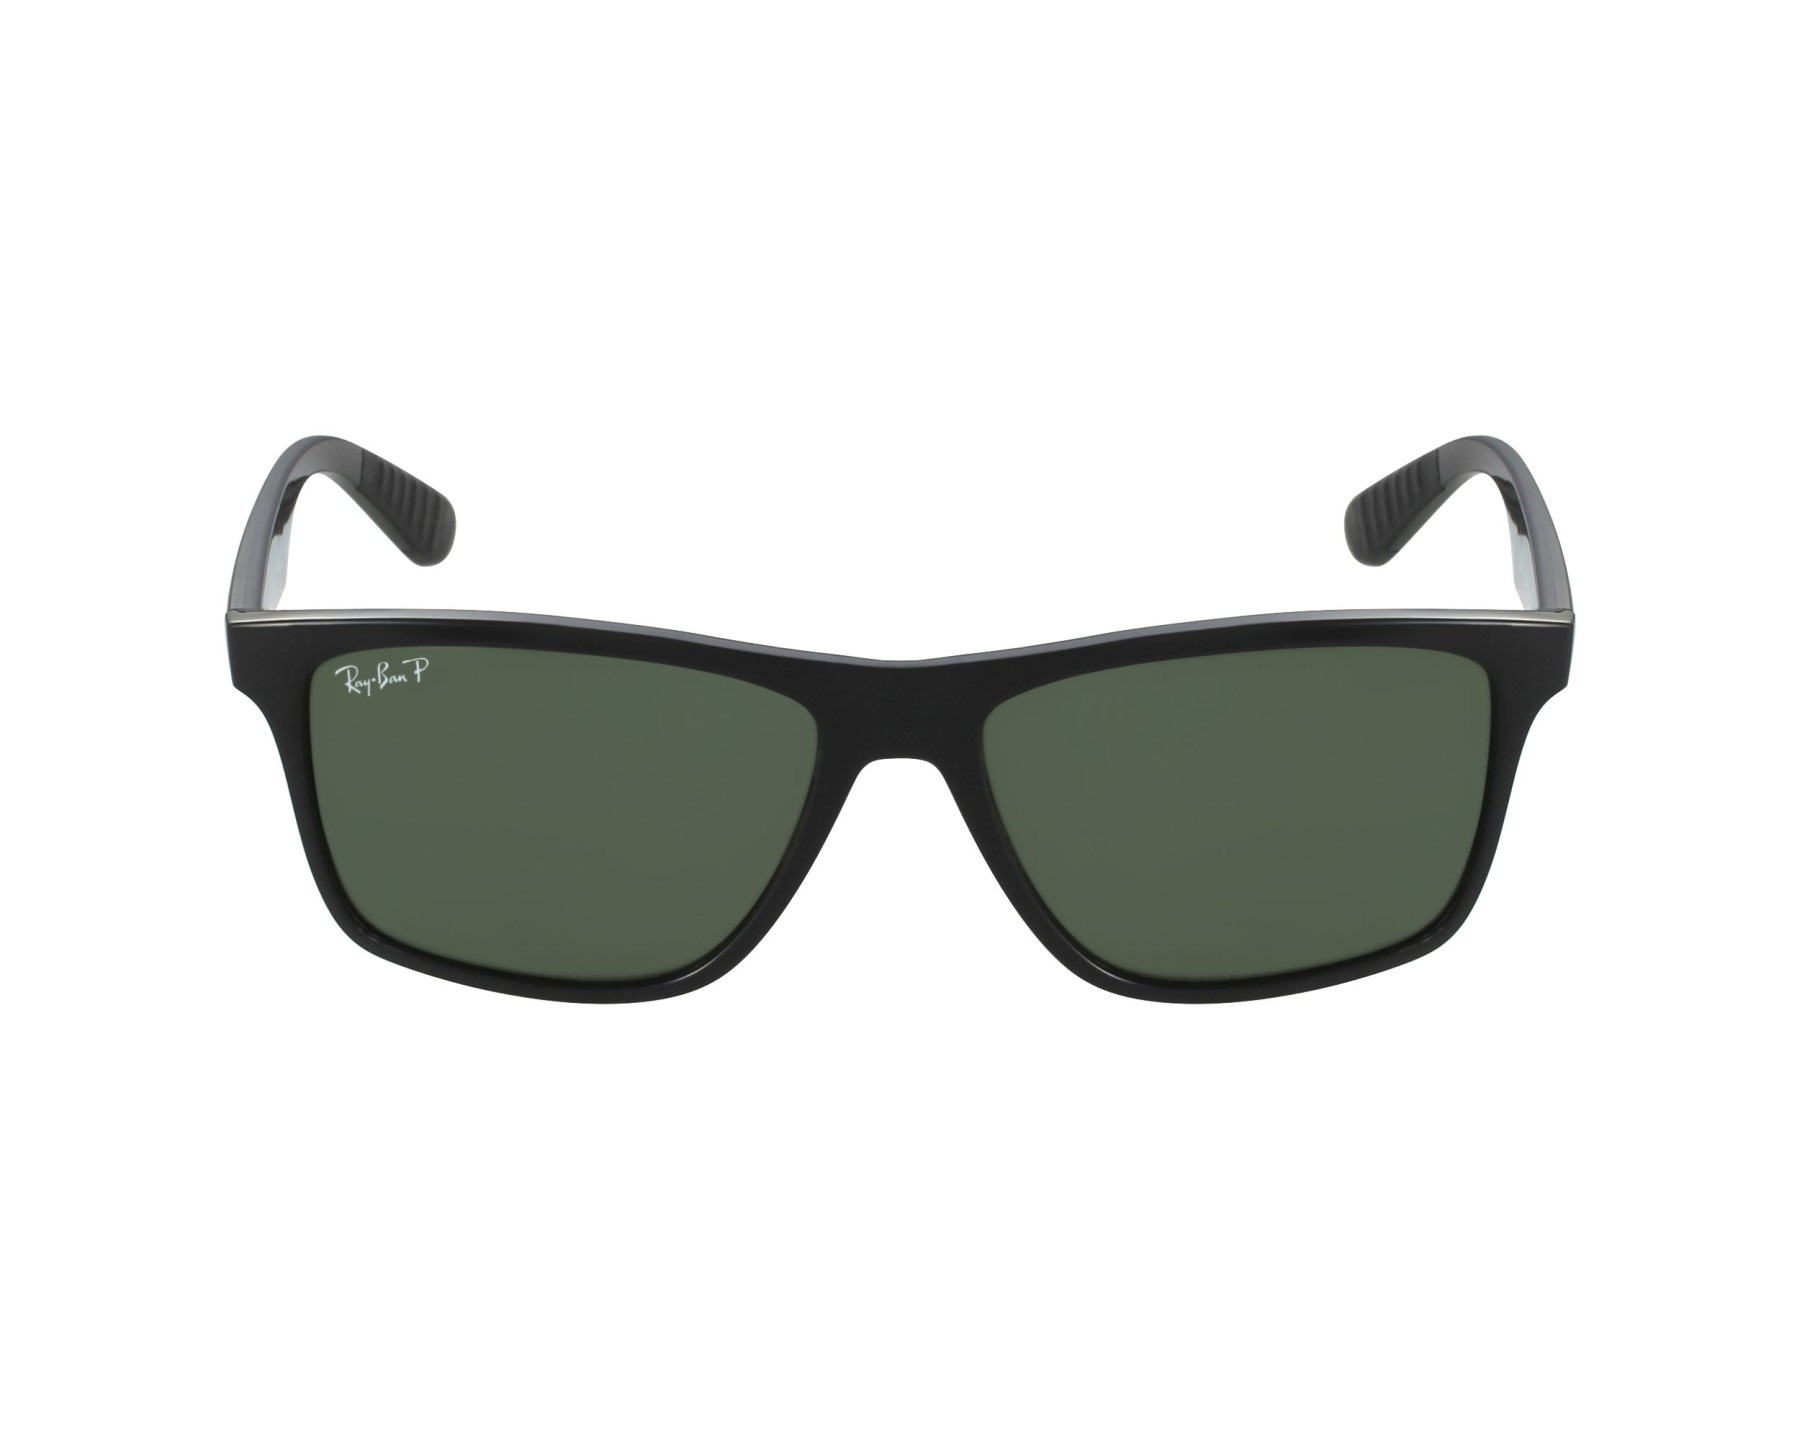 cafd1331371 Sunglasses Ray-Ban RB-4234 601 9A 58-16 Black profile view